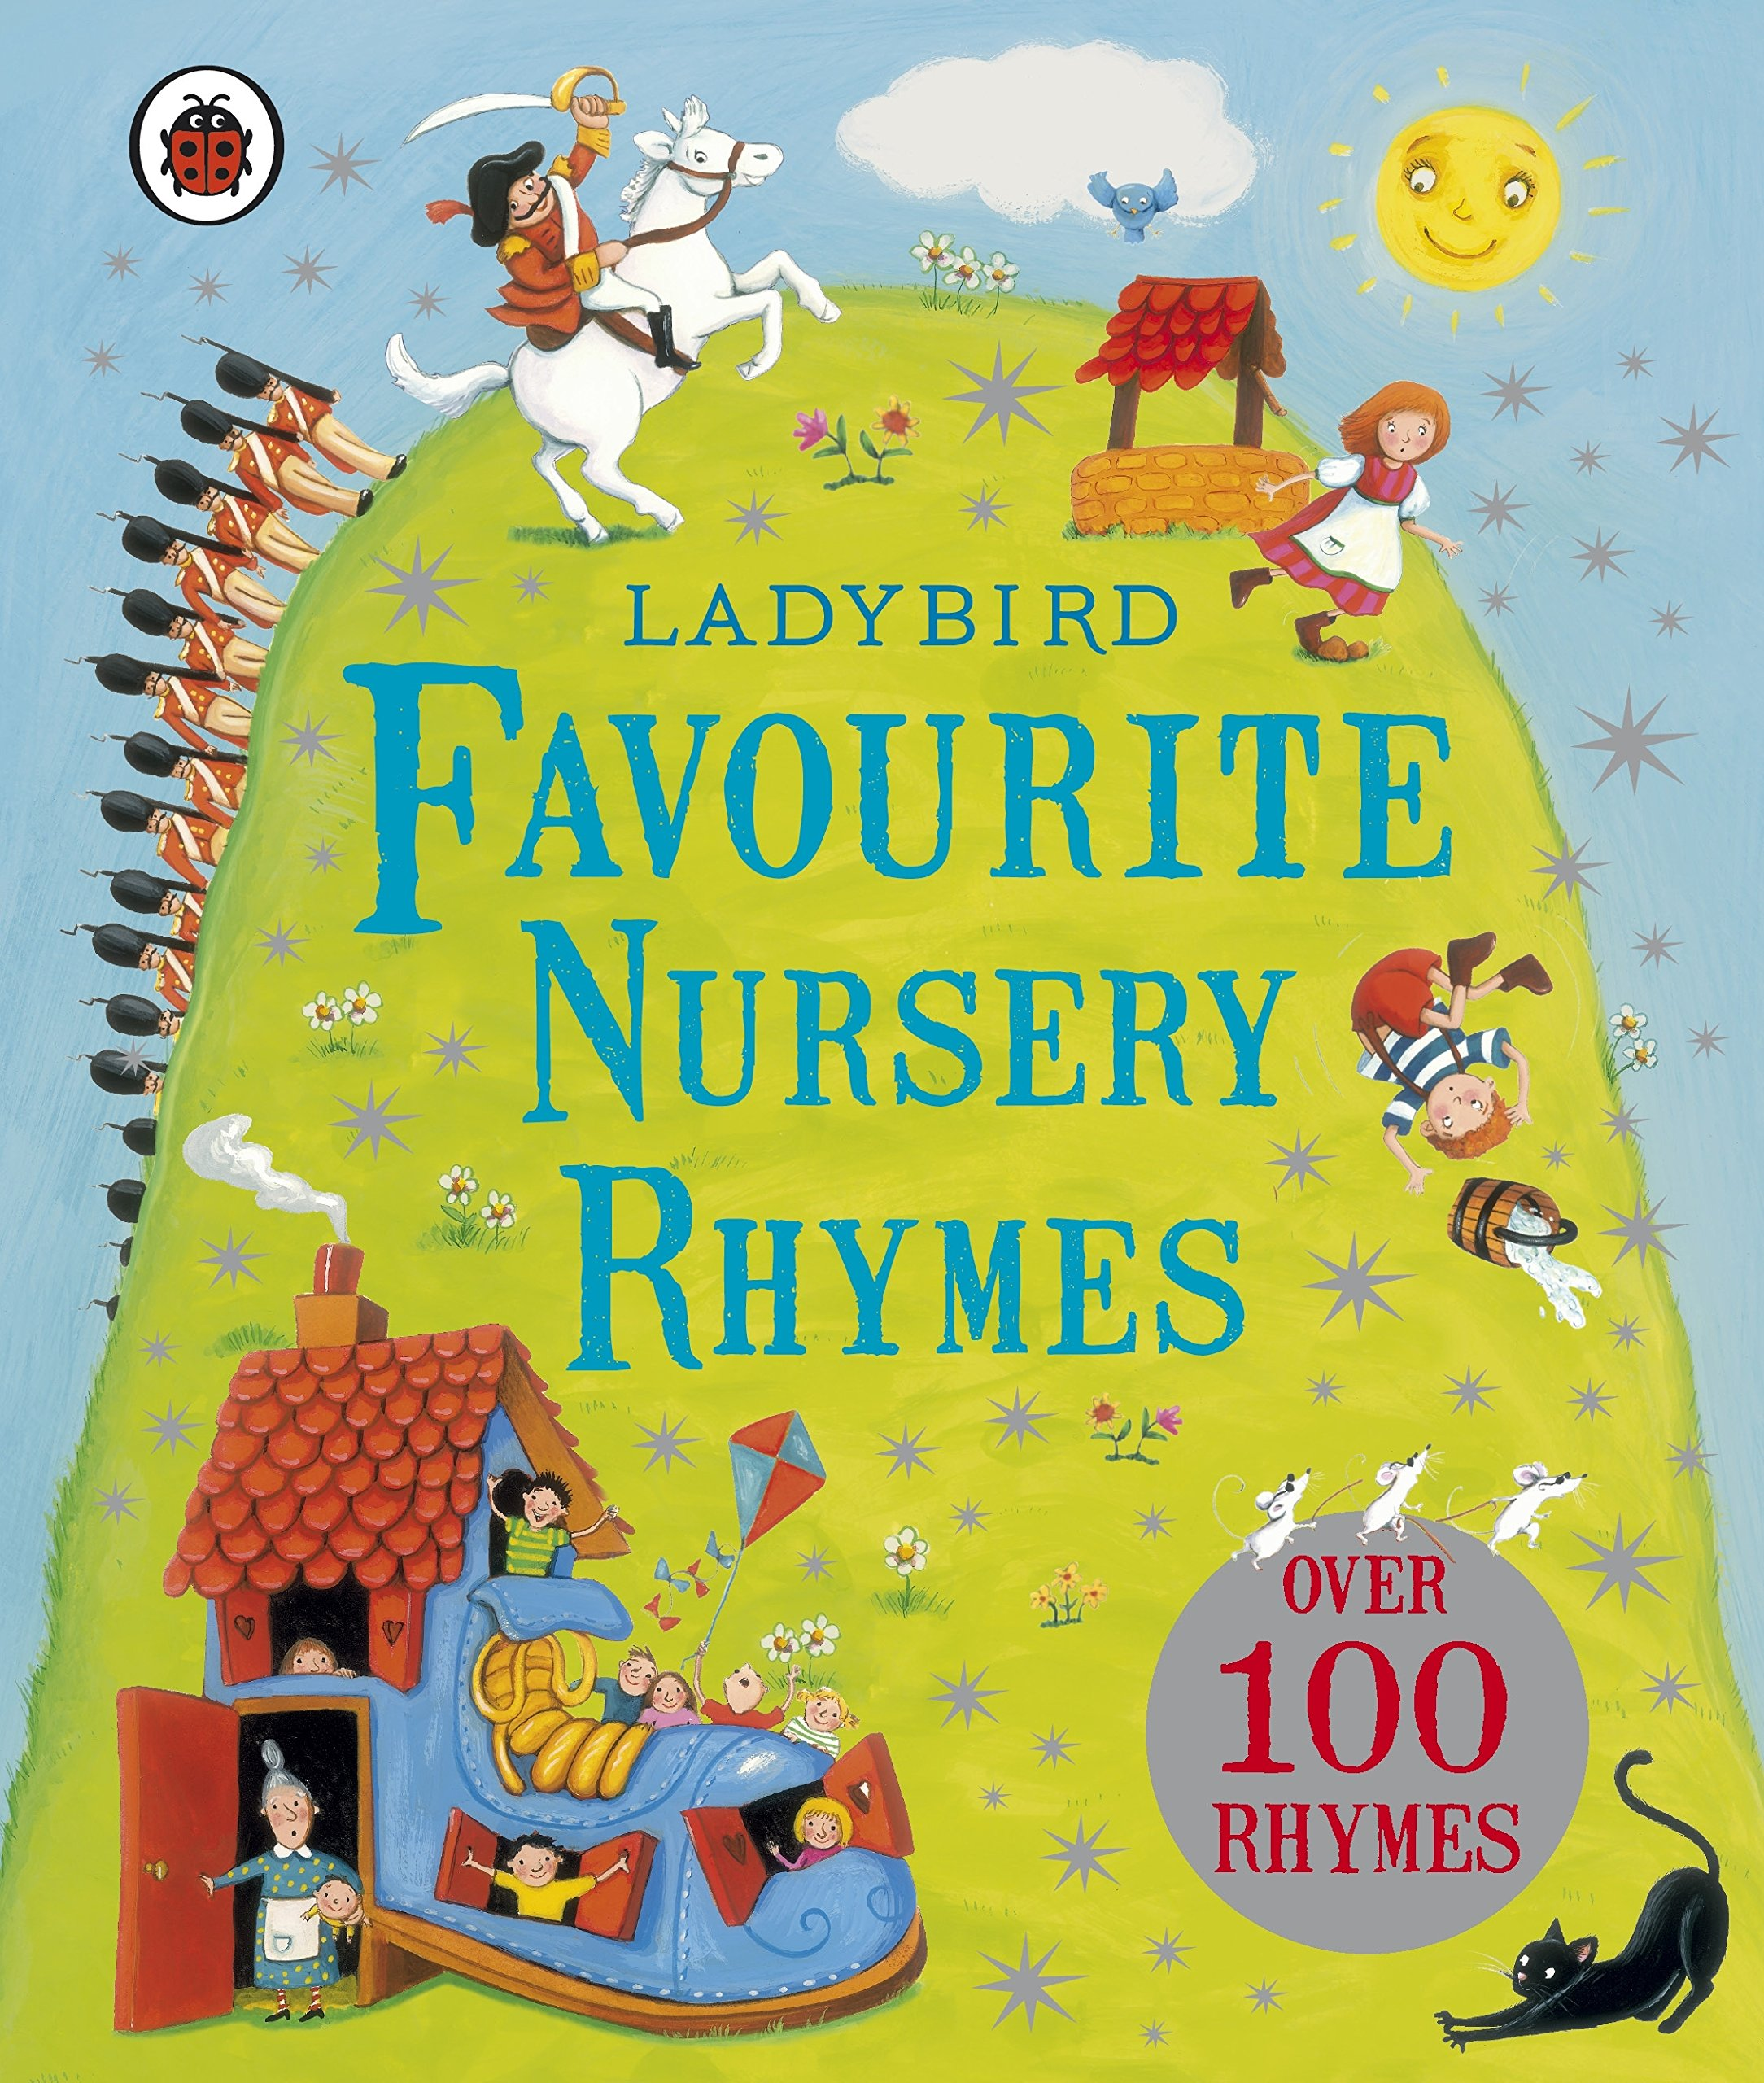 Get more rhyming resources!